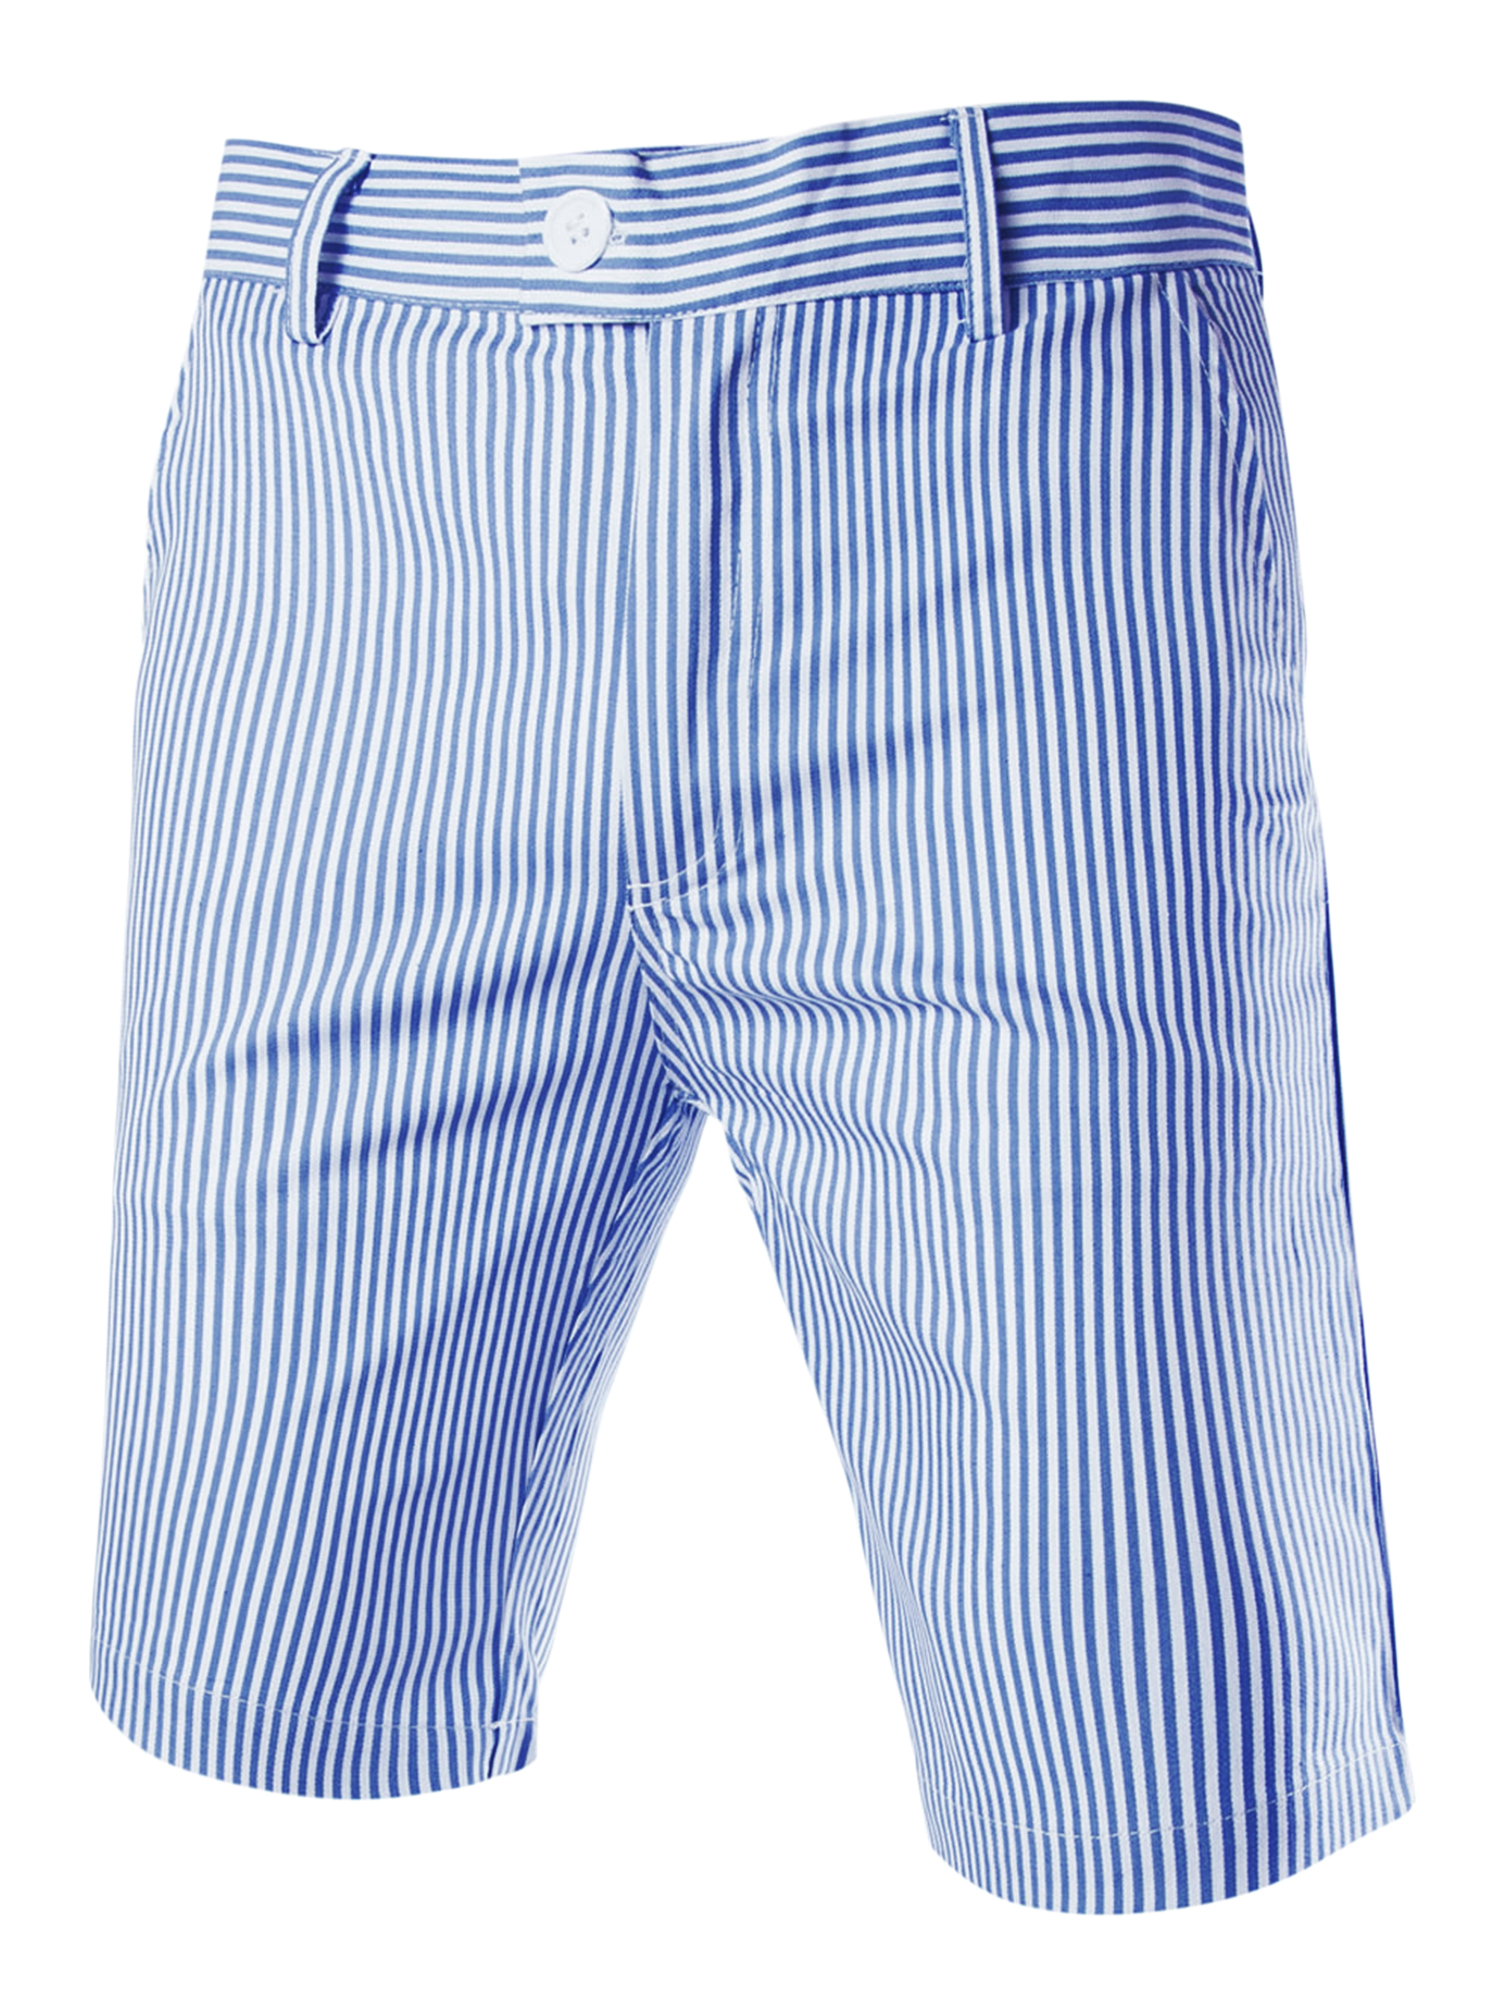 Men Vertical Stripes Regular Fit Zip Fly Chino Shorts Blue White W30